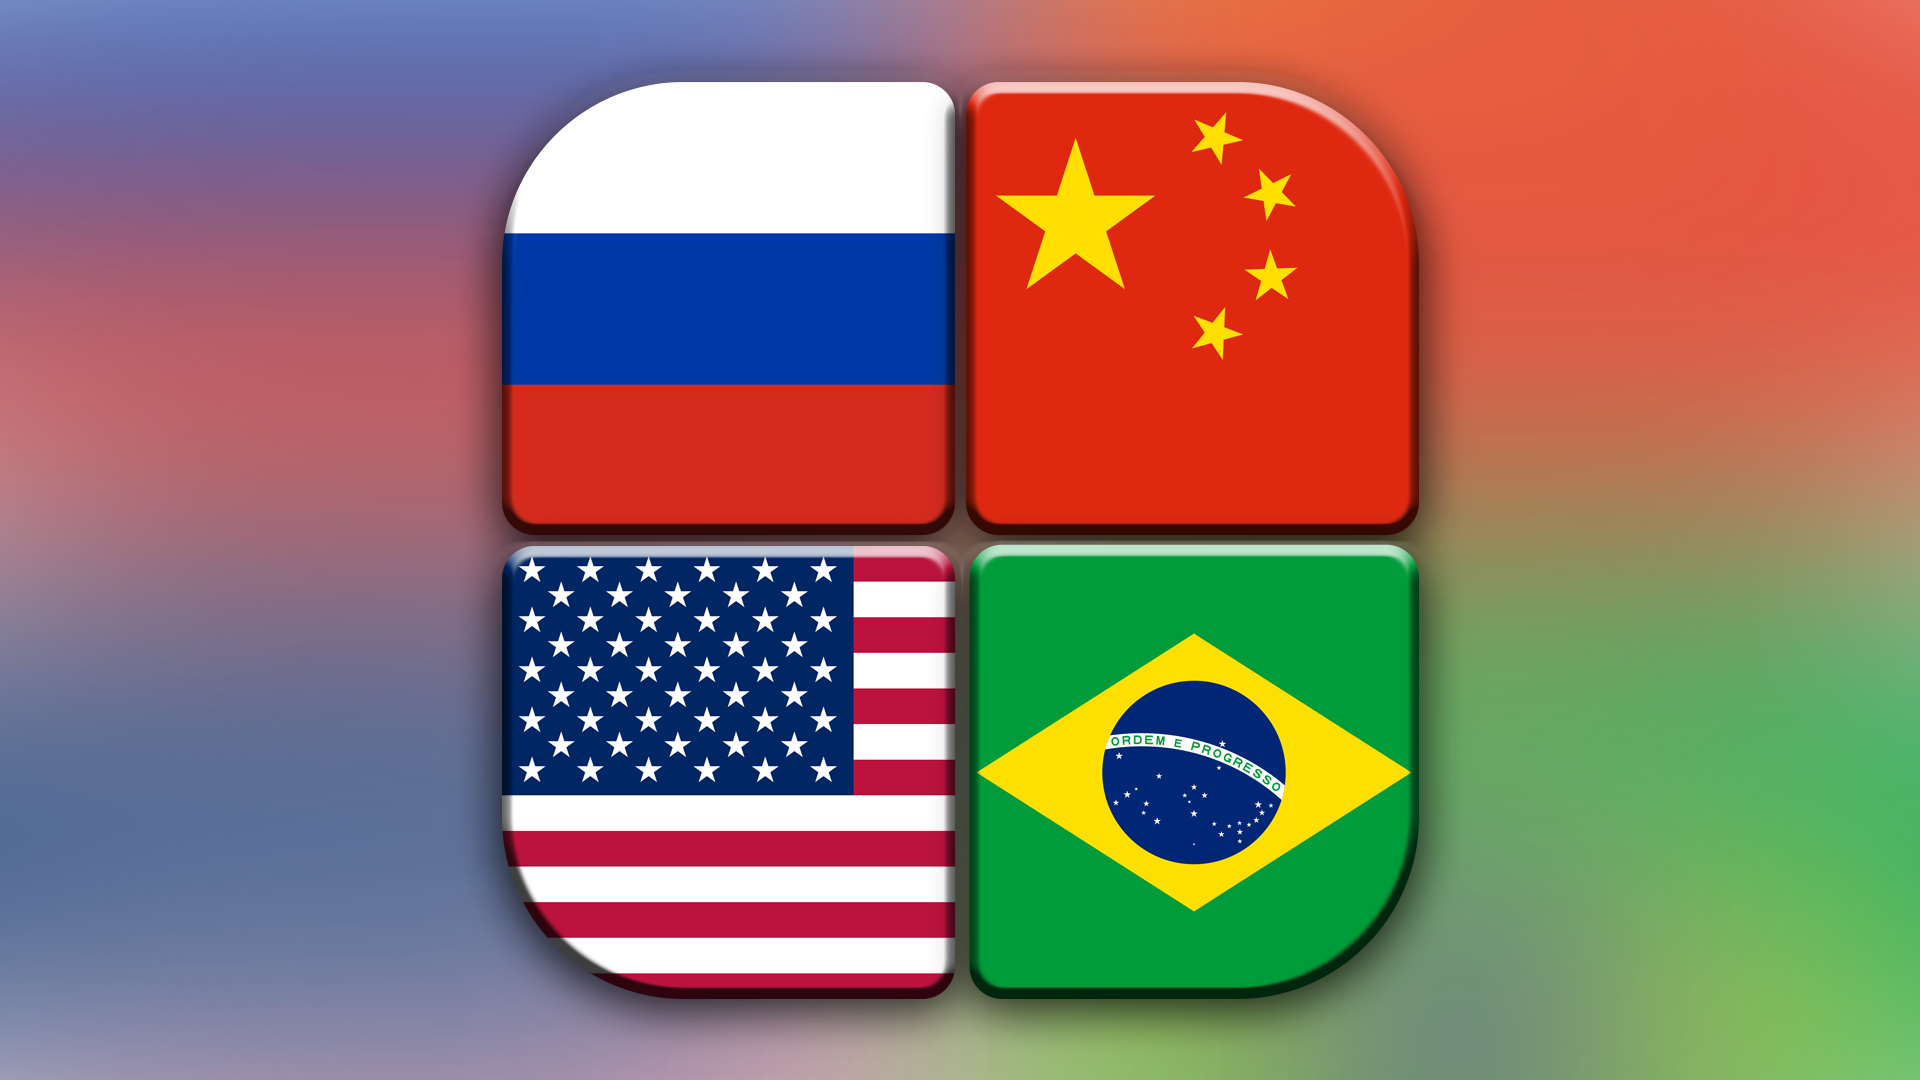 Puzzle - National Flag Games